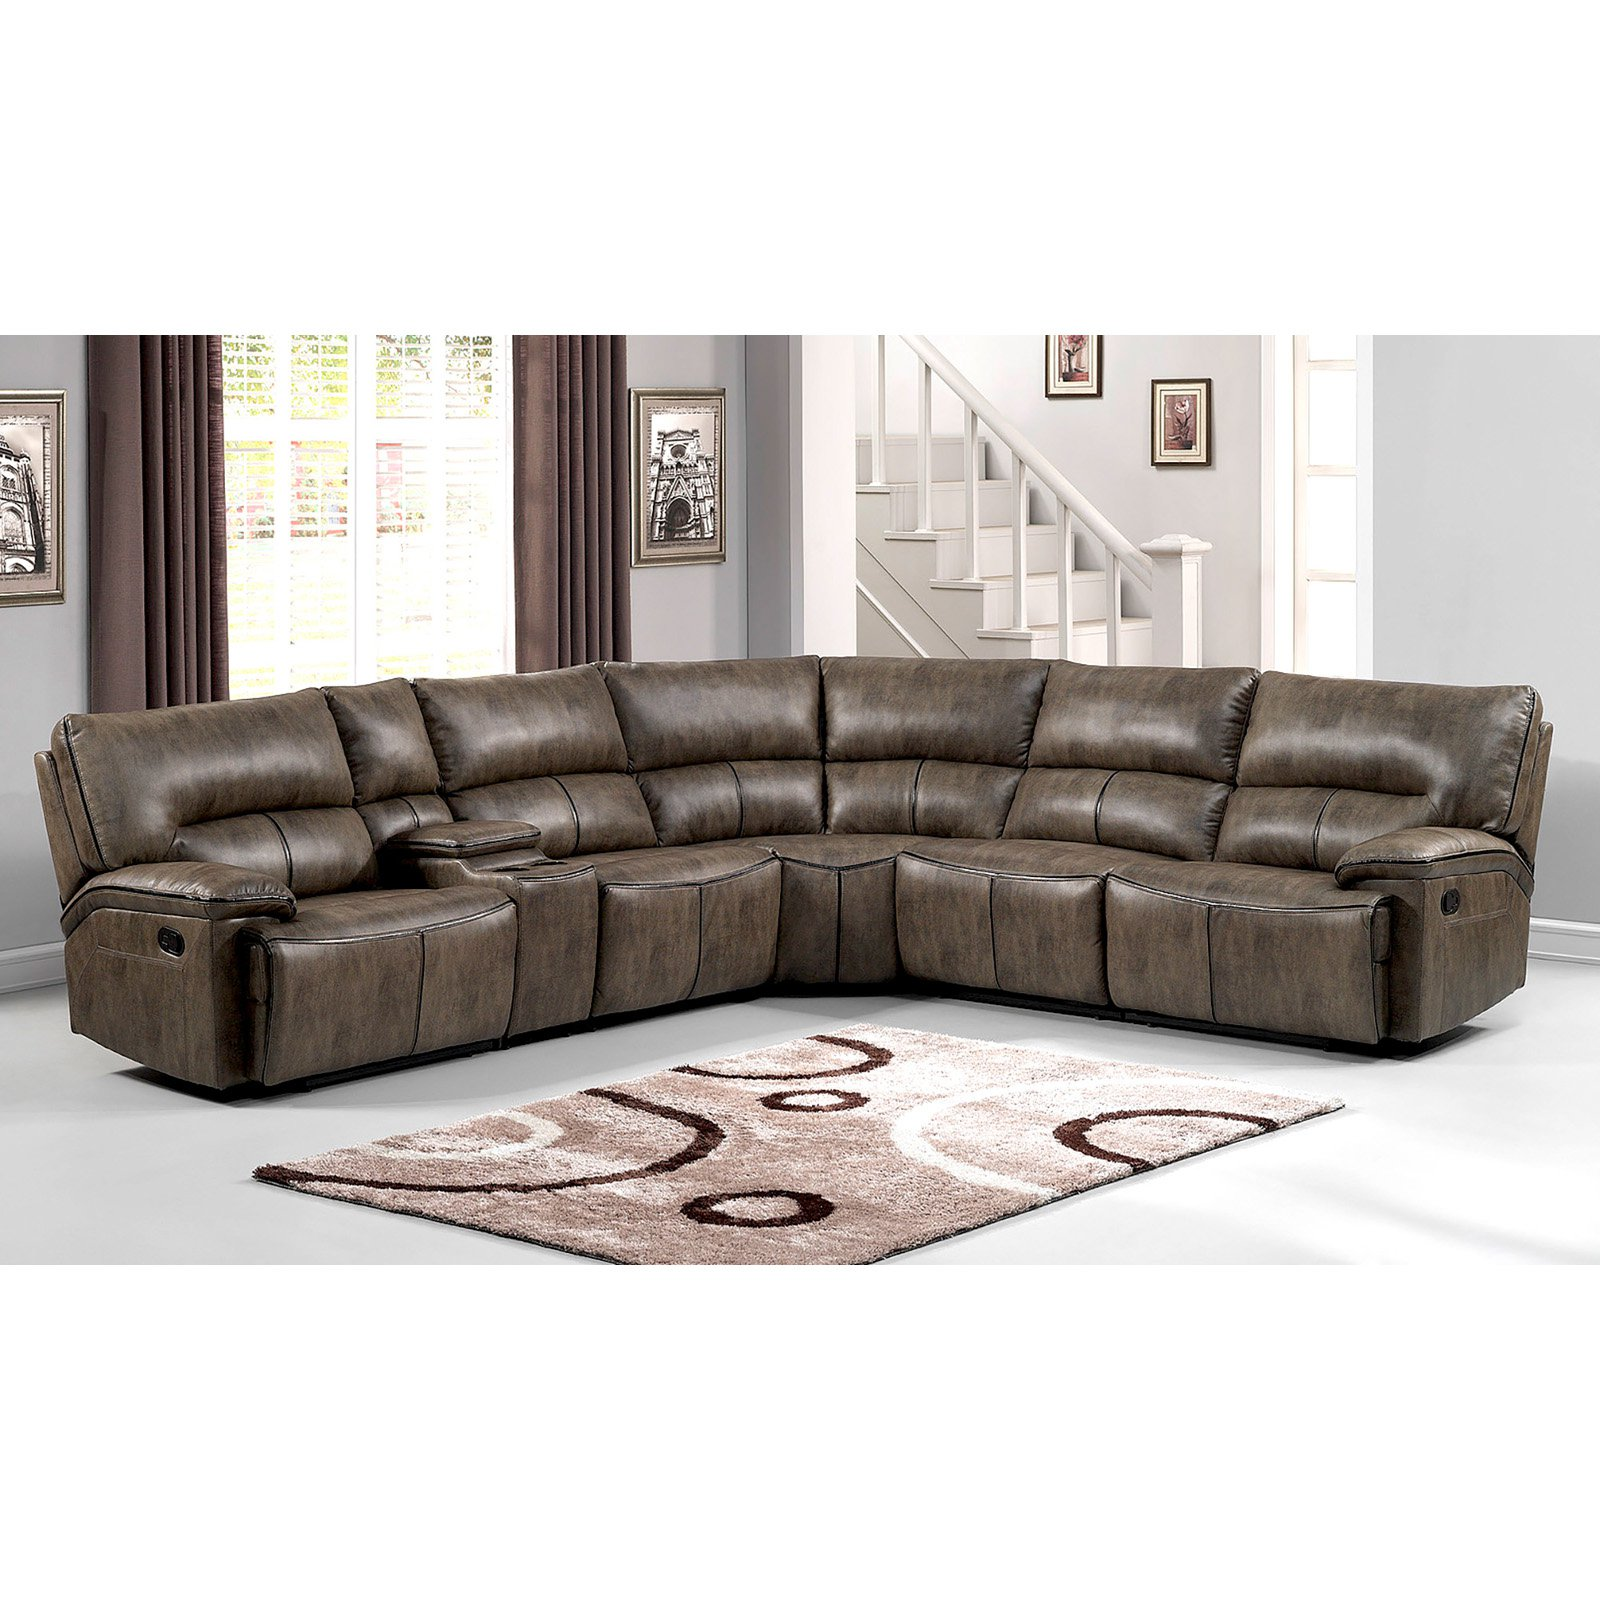 Image of AC Pacific Donovan 6 Piece Sectional Sofa Set